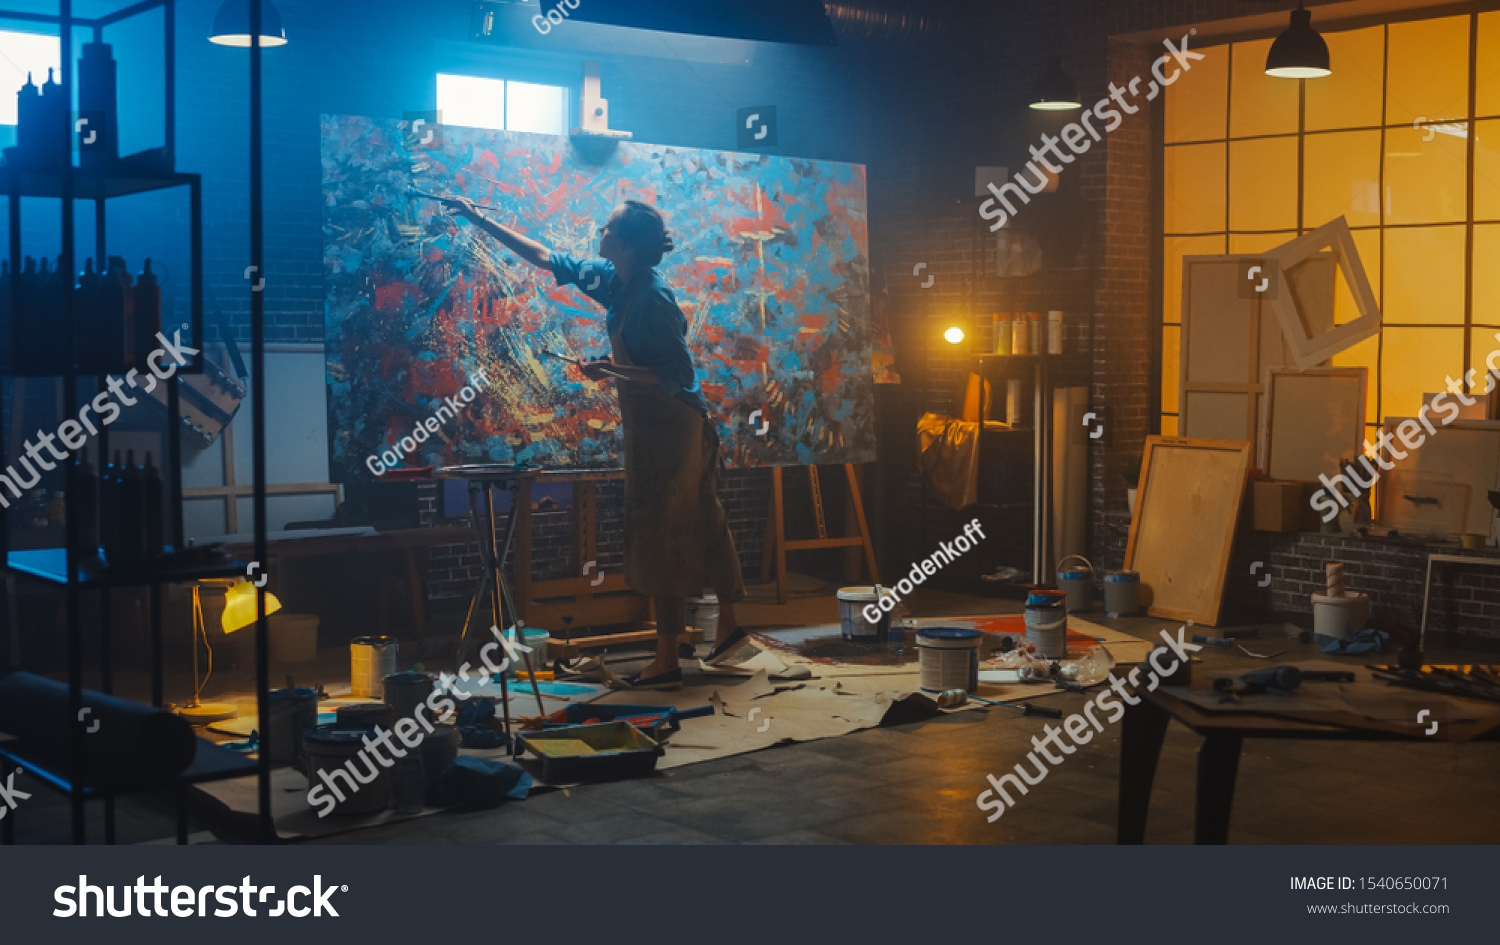 Talented Female Artist Works on Abstract Oil Painting, Using Paint Brush She Creates Modern Masterpiece. Dark and Messy Creative Studio where Large Canvas Stands on Easel Illuminated #1540650071